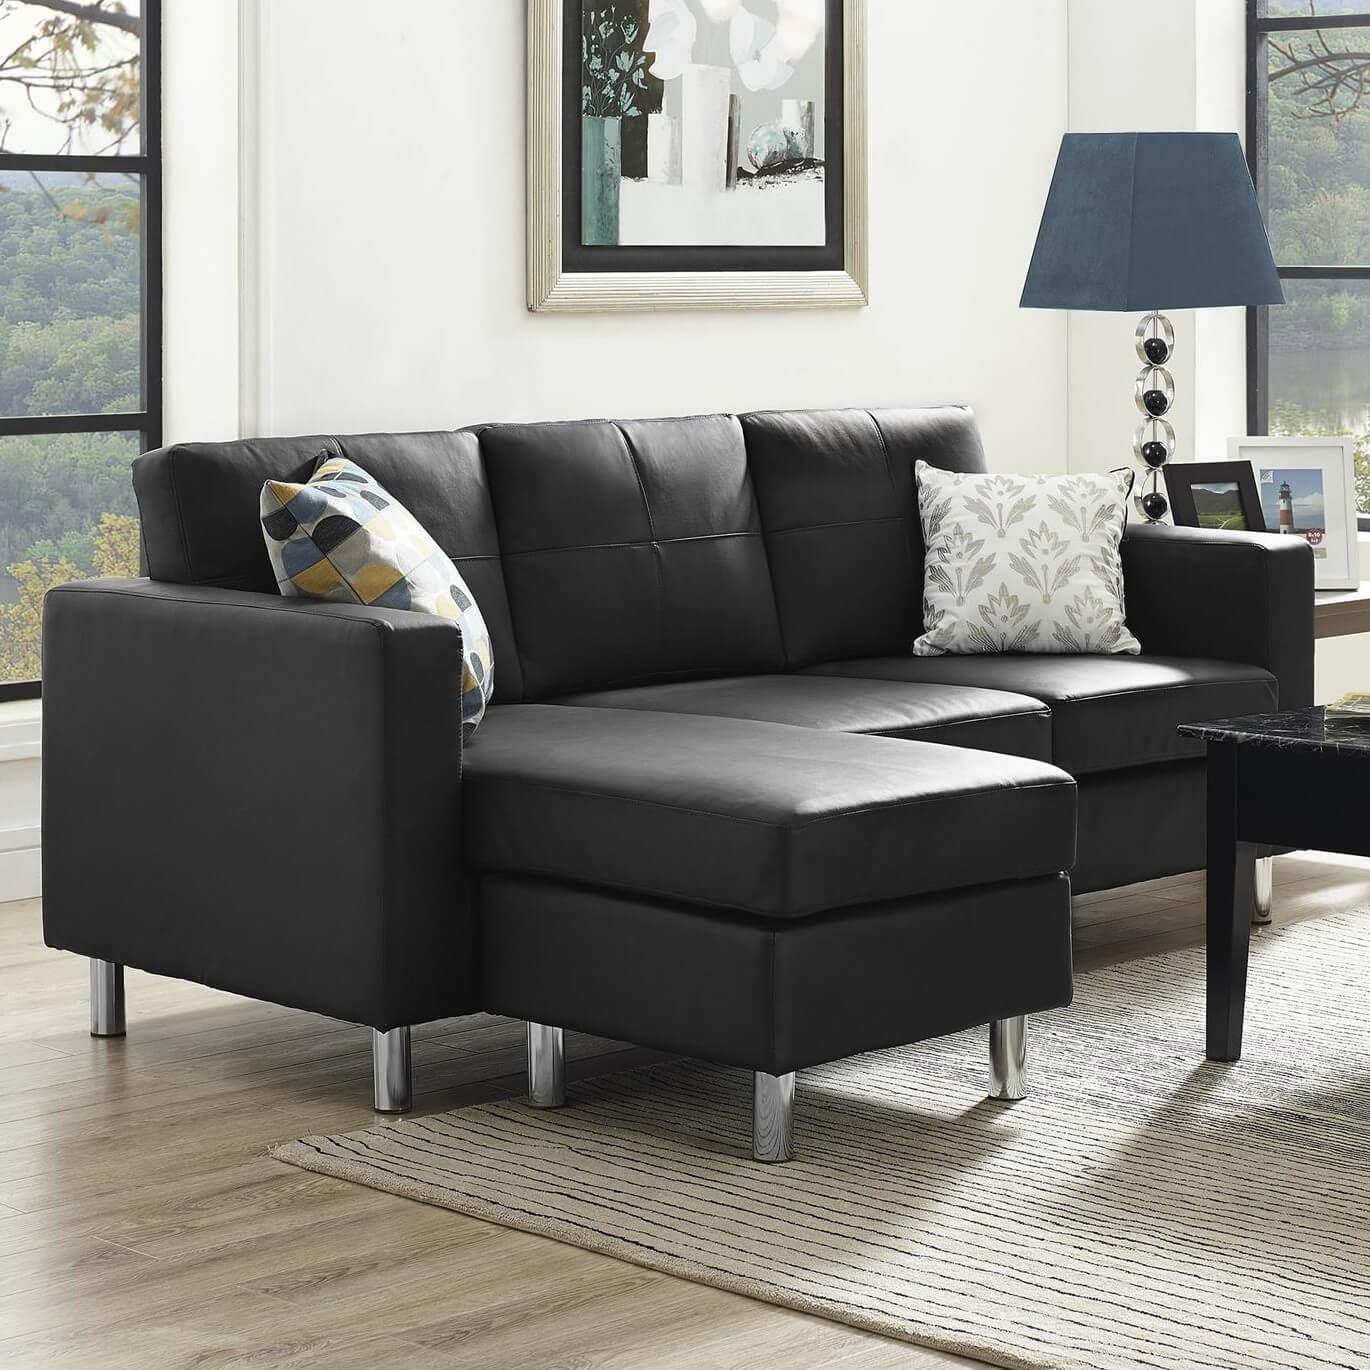 13 Sectional Sofas Under $500 (Several Styles) For Leather And Suede Sectional (View 18 of 20)